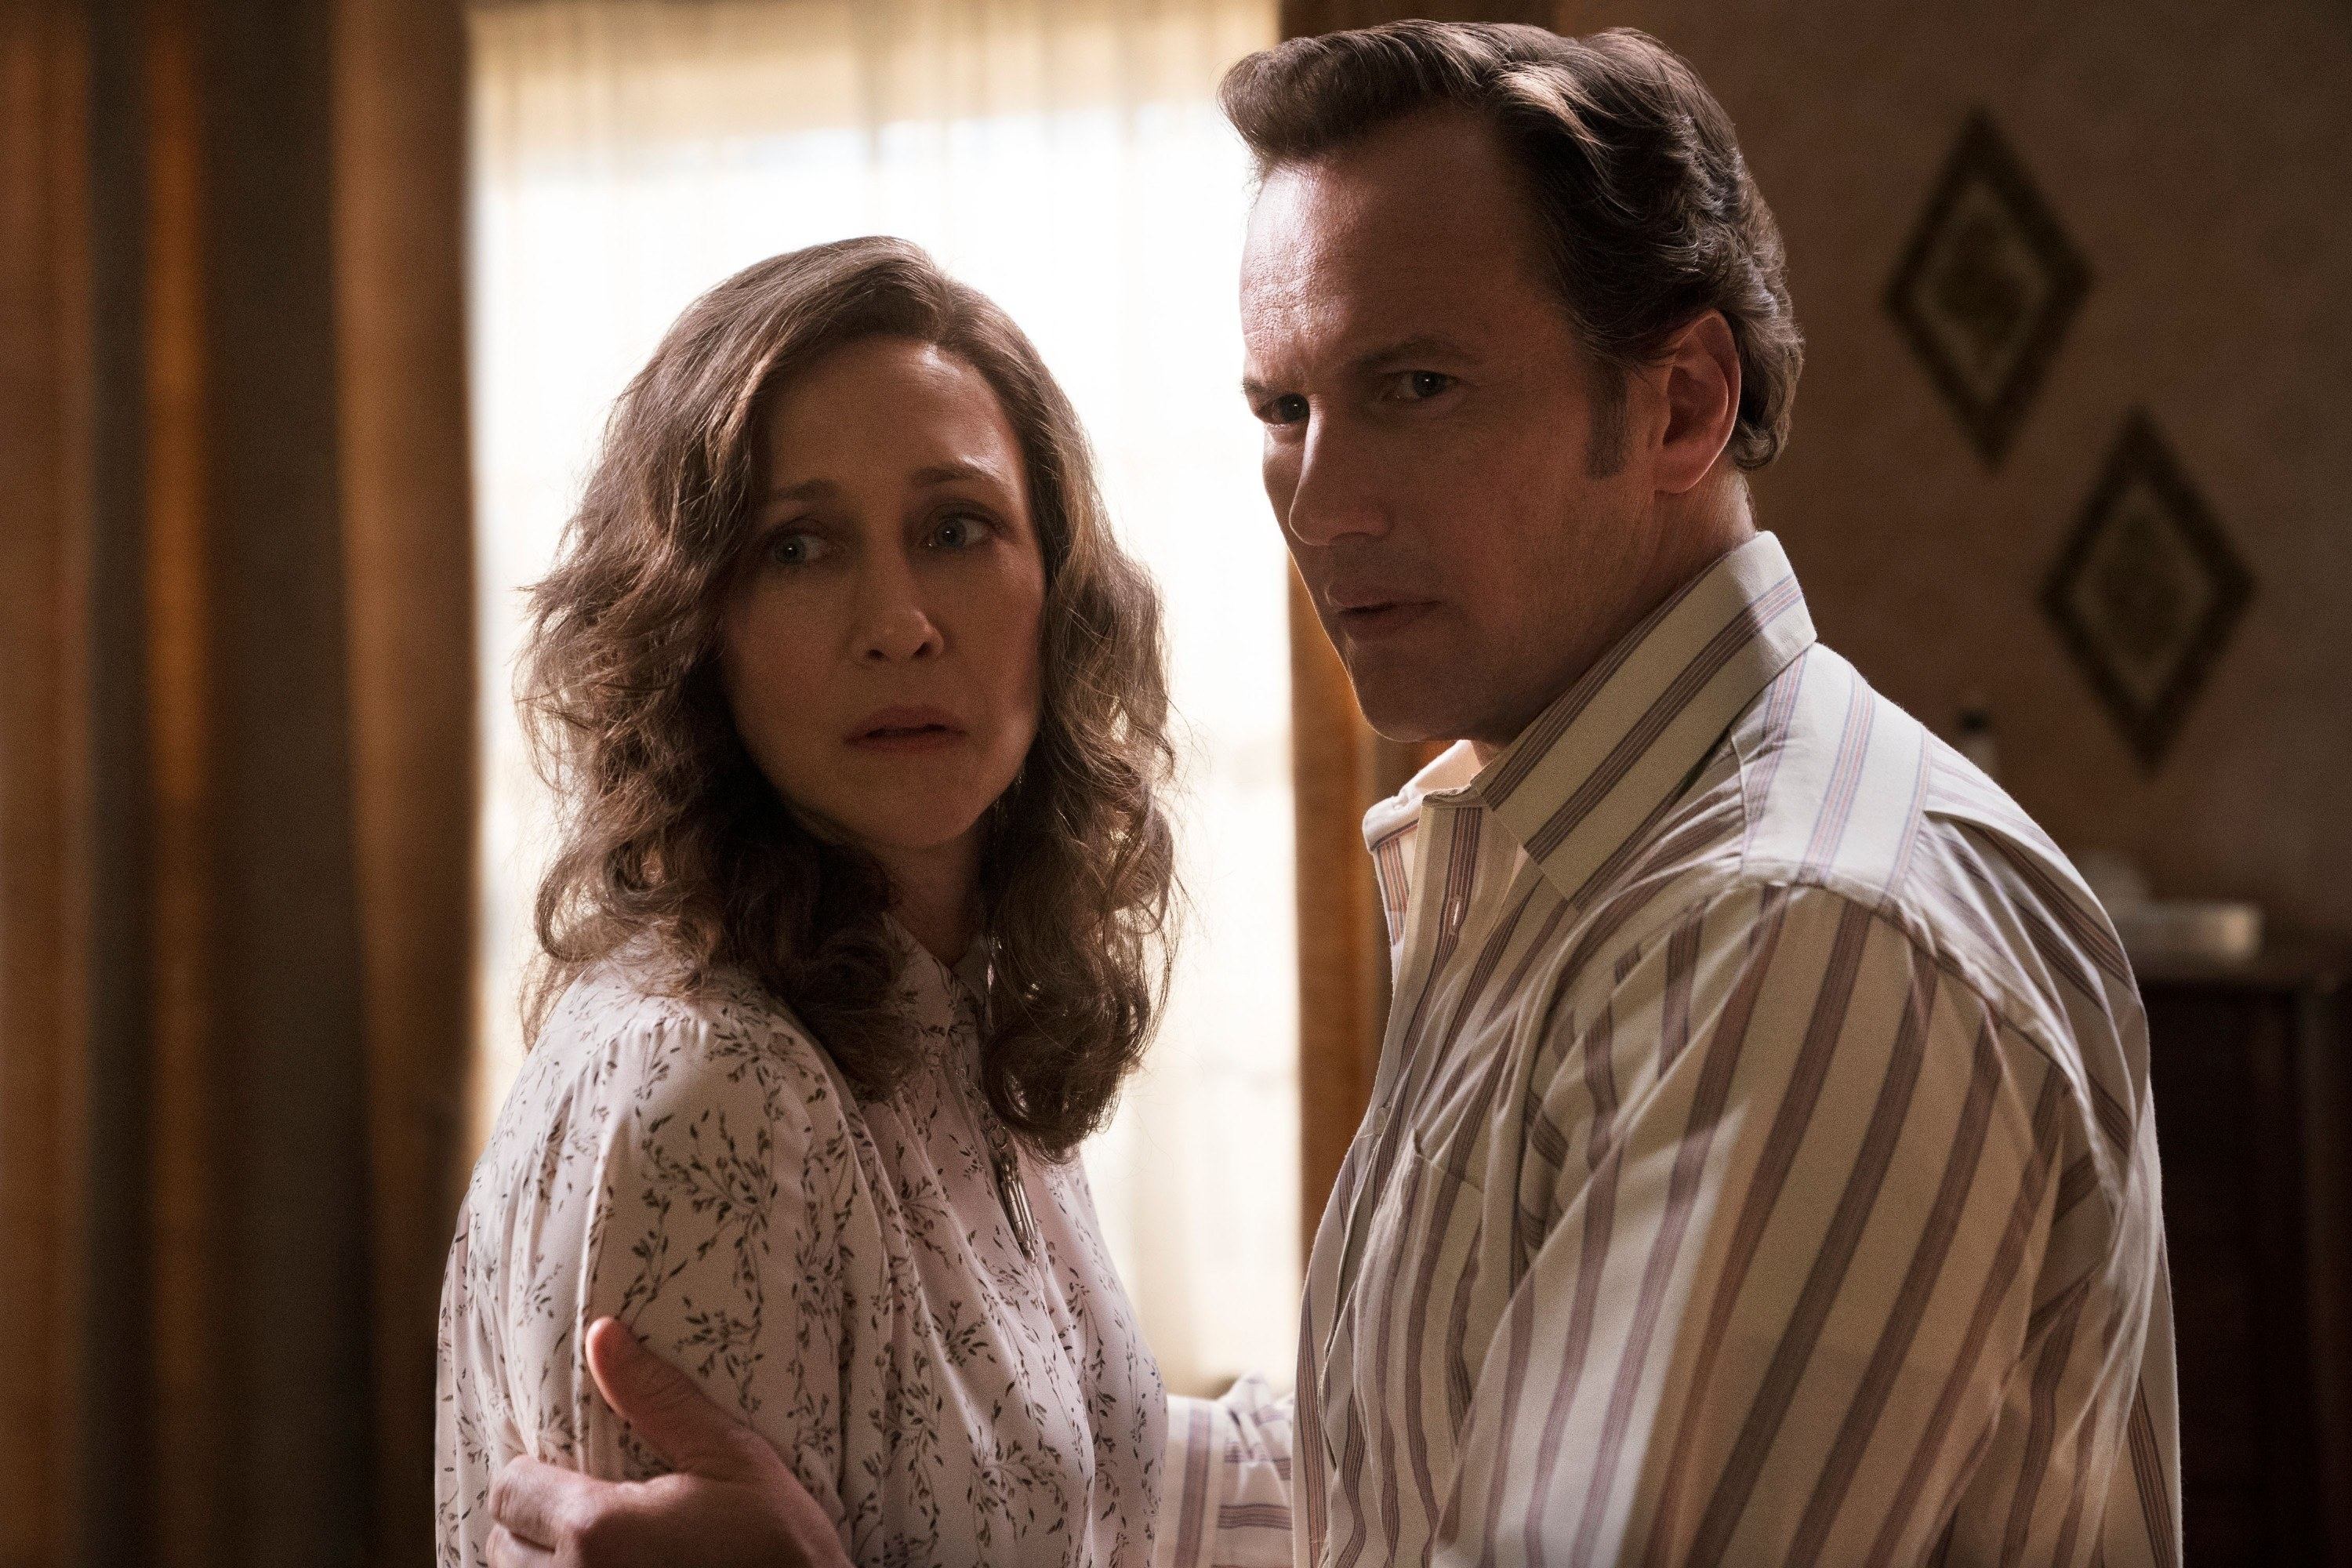 Vera Farmiga and Patrick Wilson as Lorraine and Ed Warren appearing to look scared and concerned